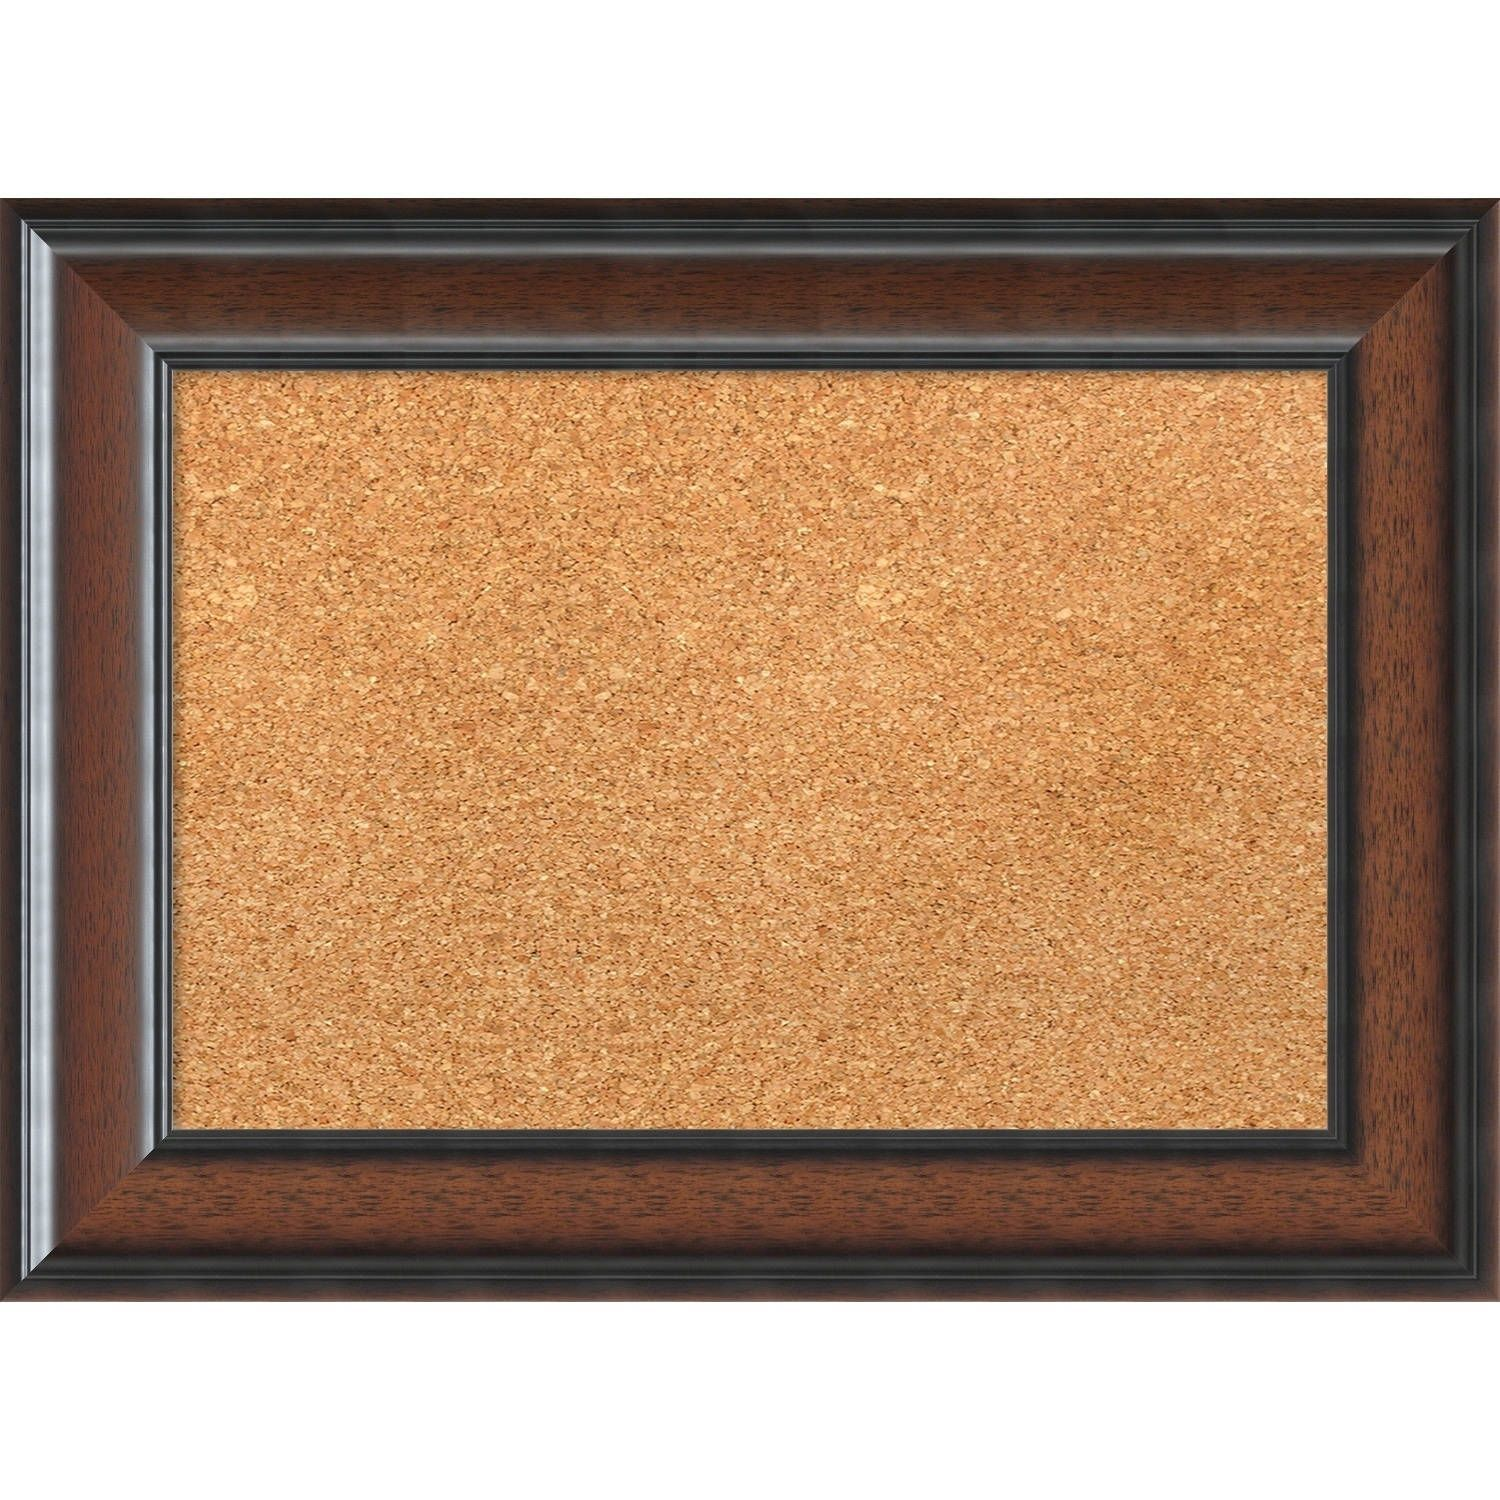 Amanti Art Framed Cork Board Cyprus Walnut Small 23 X 17 Inch